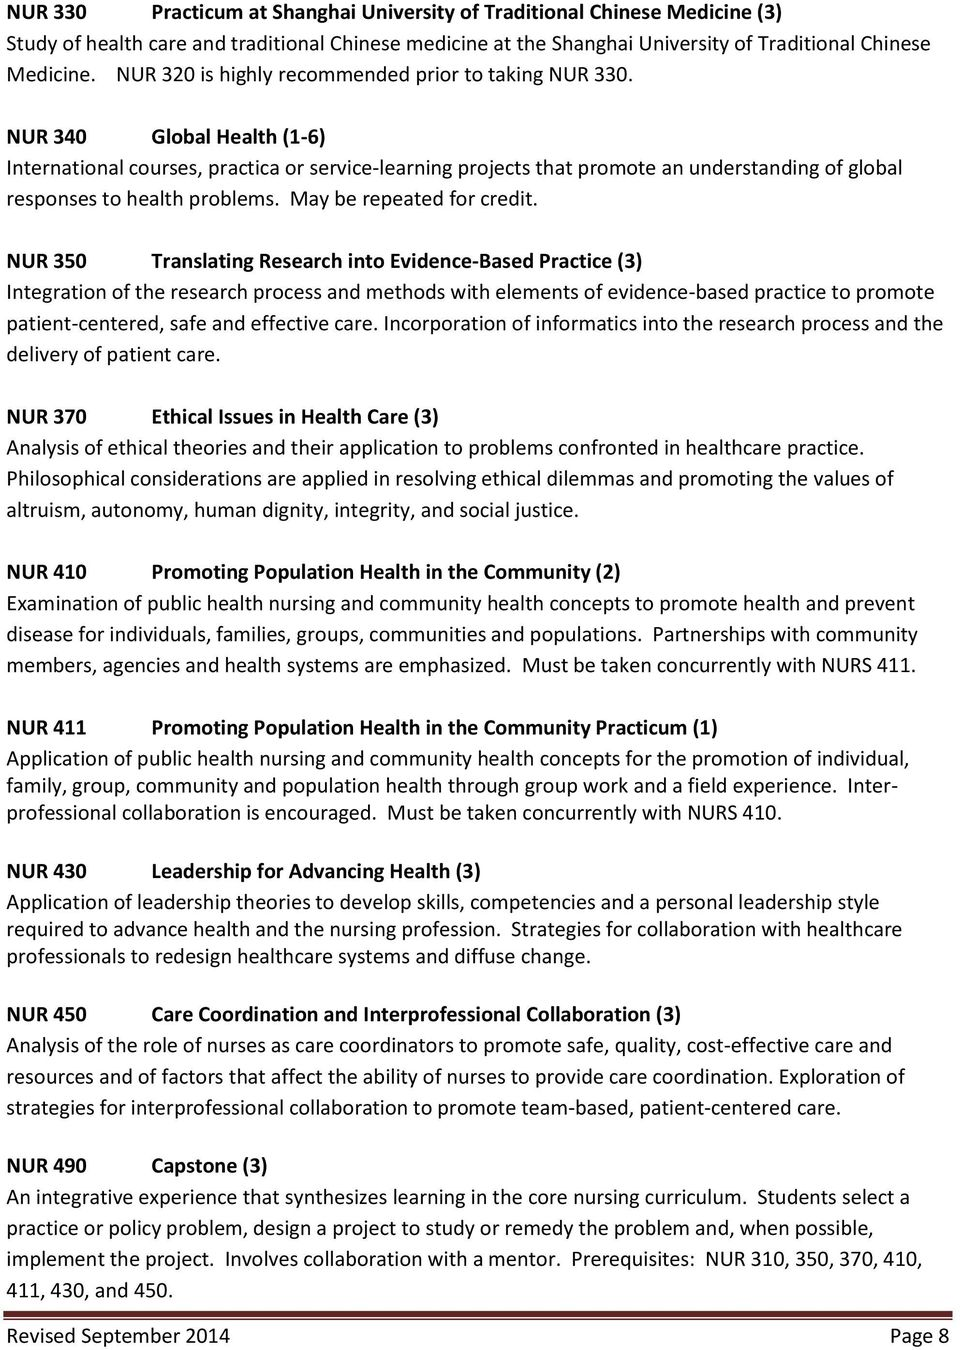 NUR 340 Global Health (1-6) International courses, practica or service-learning projects that promote an understanding of global responses to health problems. May be repeated for credit.